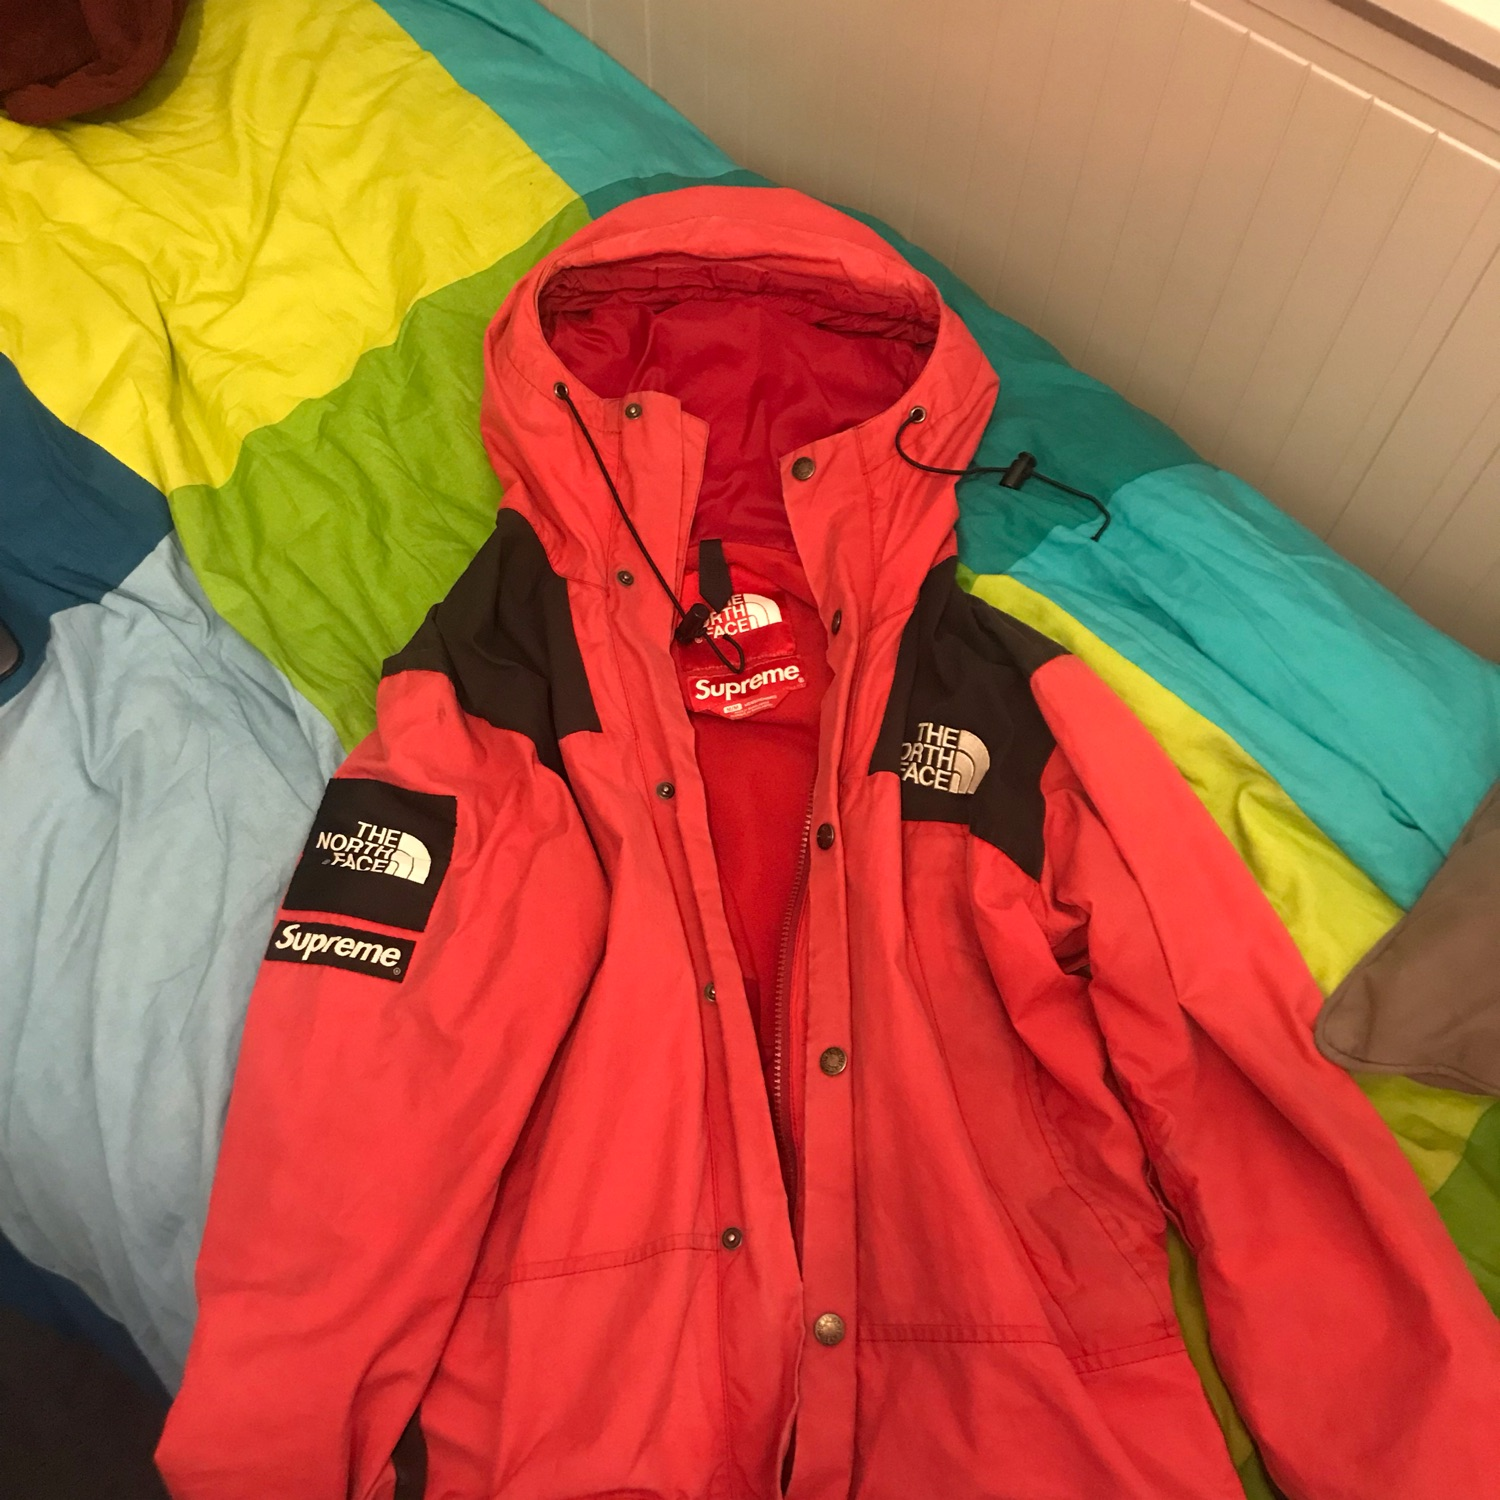 45674b4d0 Supreme X The North Face Waxed Cotton Jacket 2010